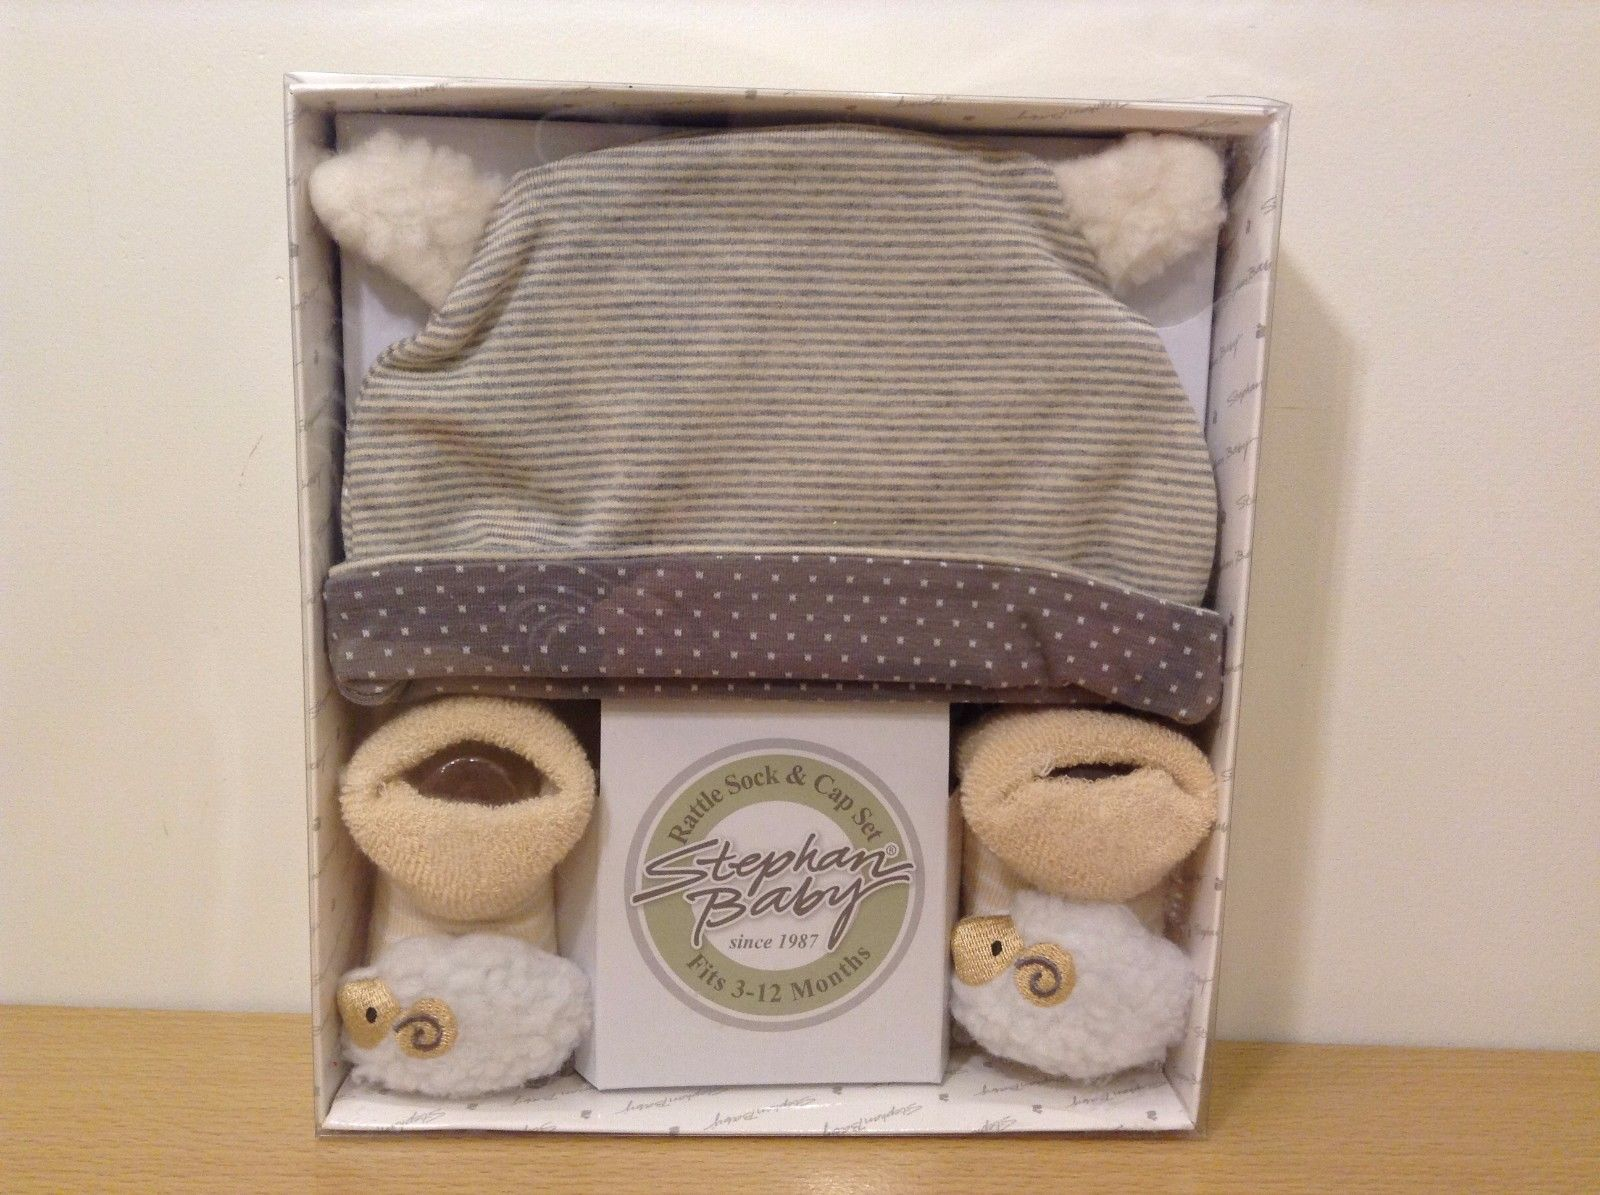 Stephan Baby Lamb Rattle Socks Cap Set New In Box 3-12 Months Gray Beige